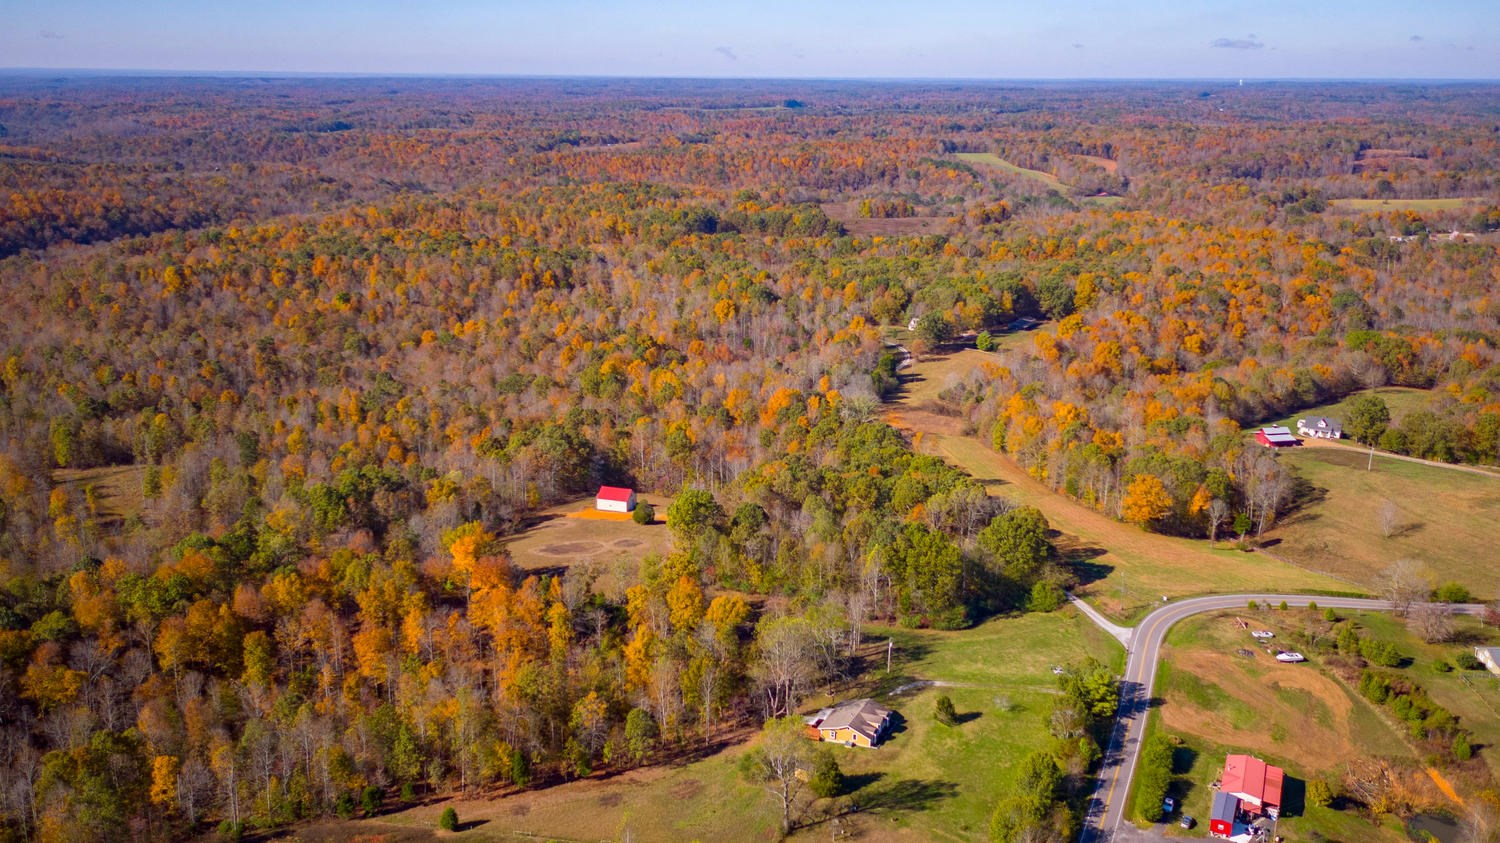 16 Acres in Primm Springs Tennessee!